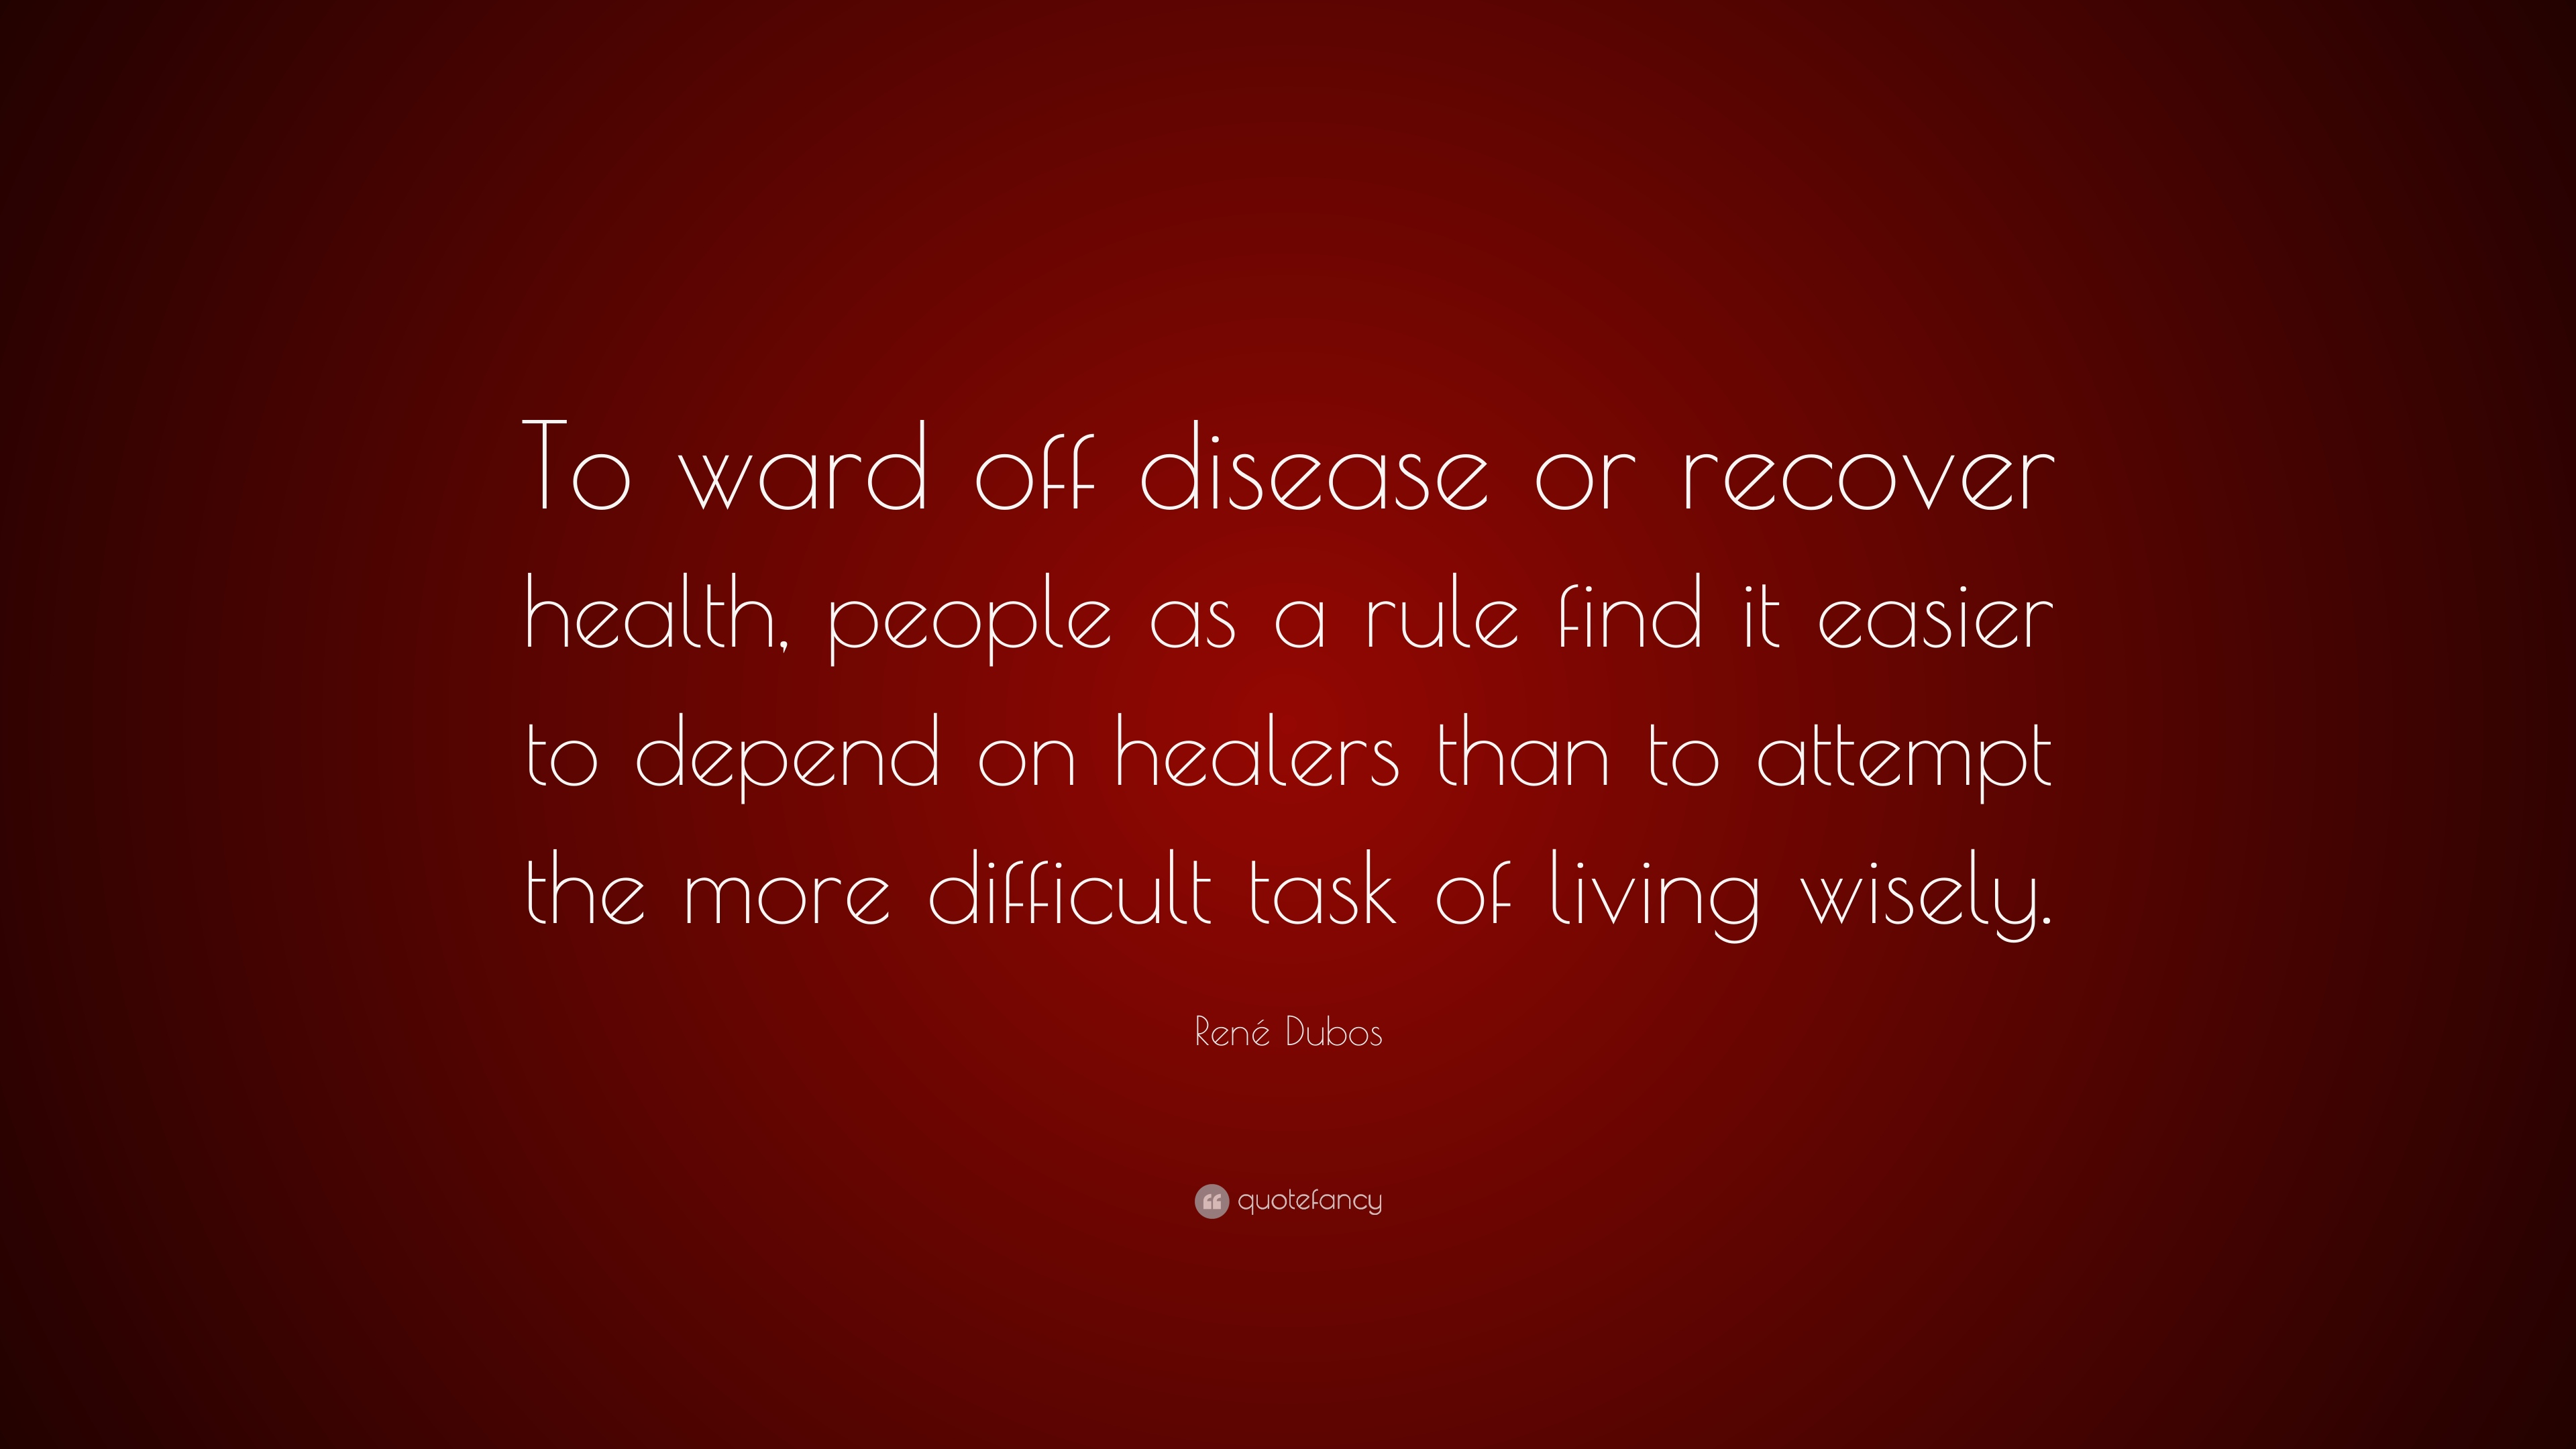 rené dubos quote to ward off disease or recover health people as